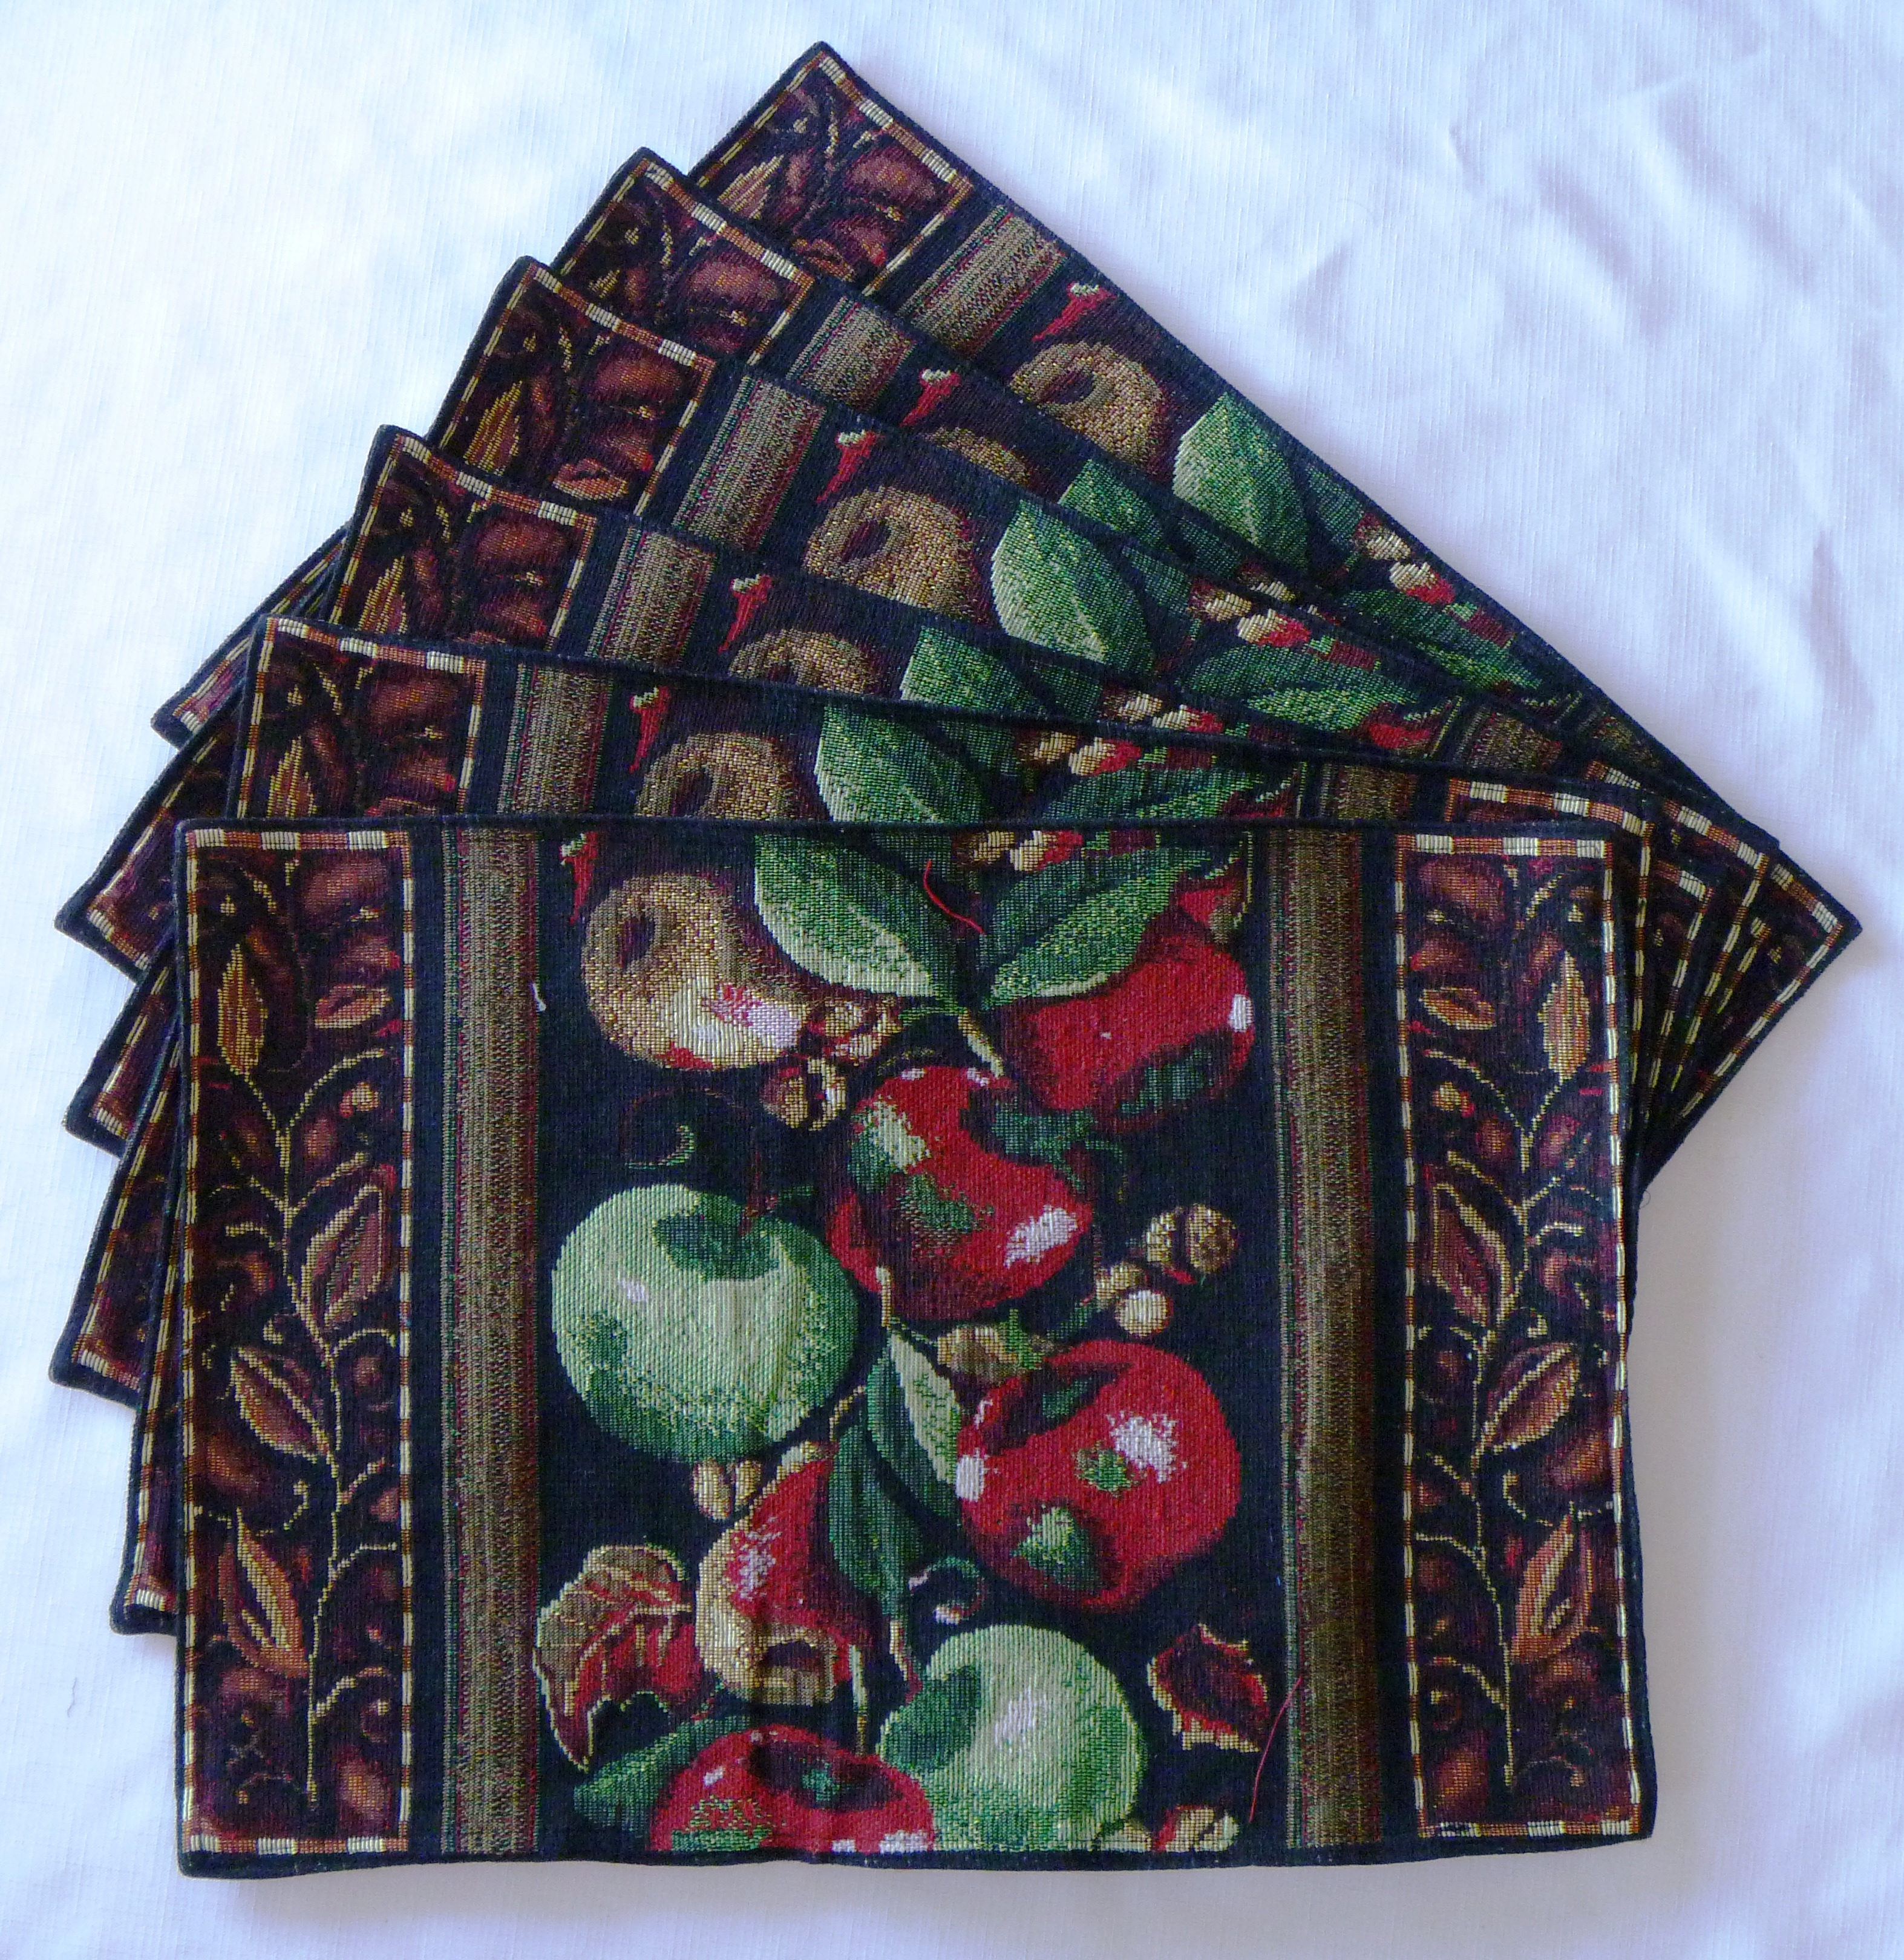 Tapestry Harvest Scroll Place Mats (Set of 6)